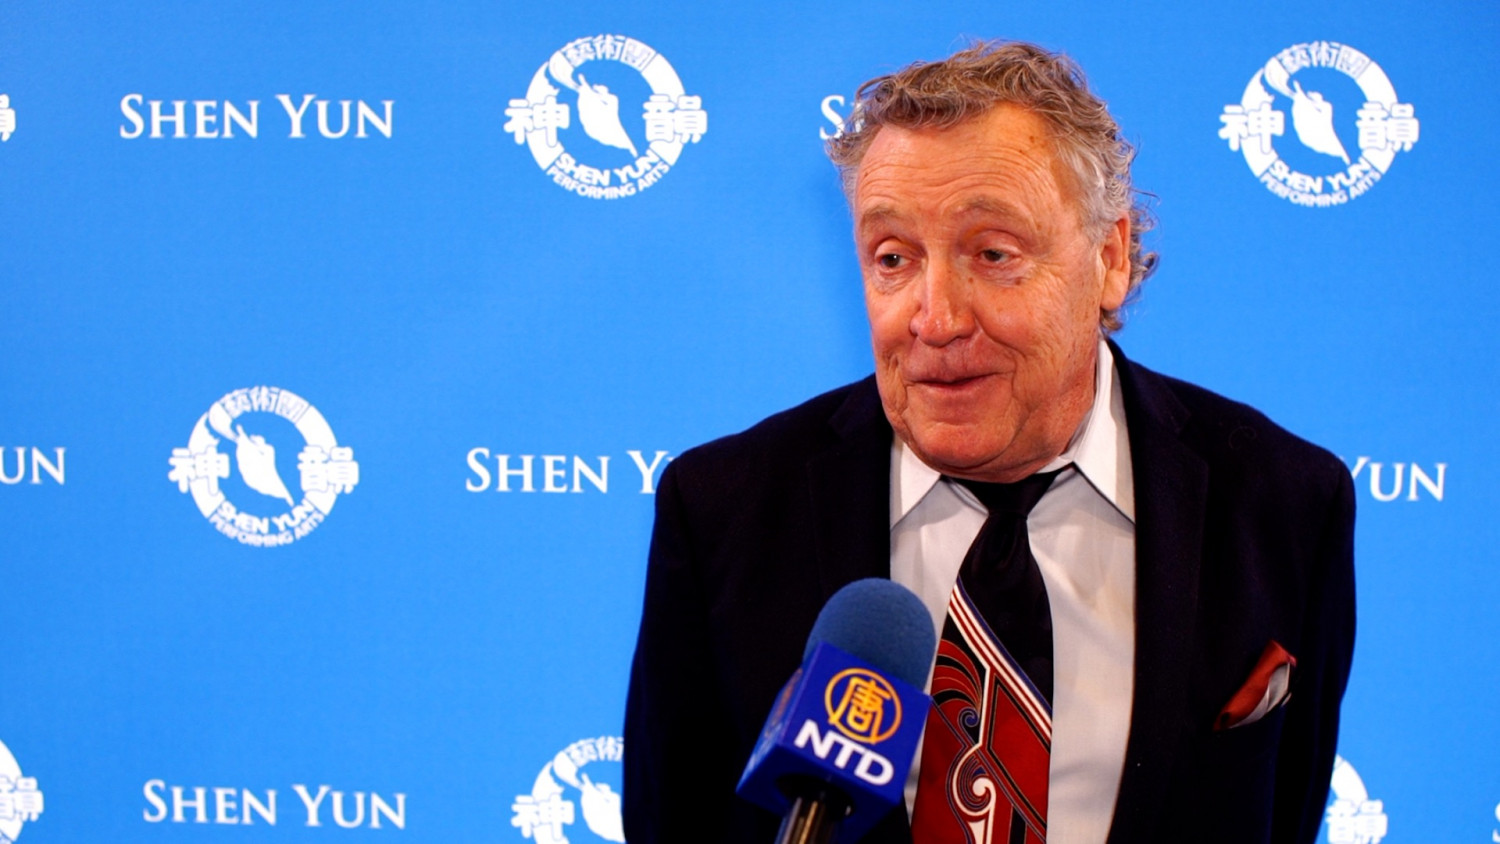 CEO Praises Shen Yun: 'It Warms the Heart'